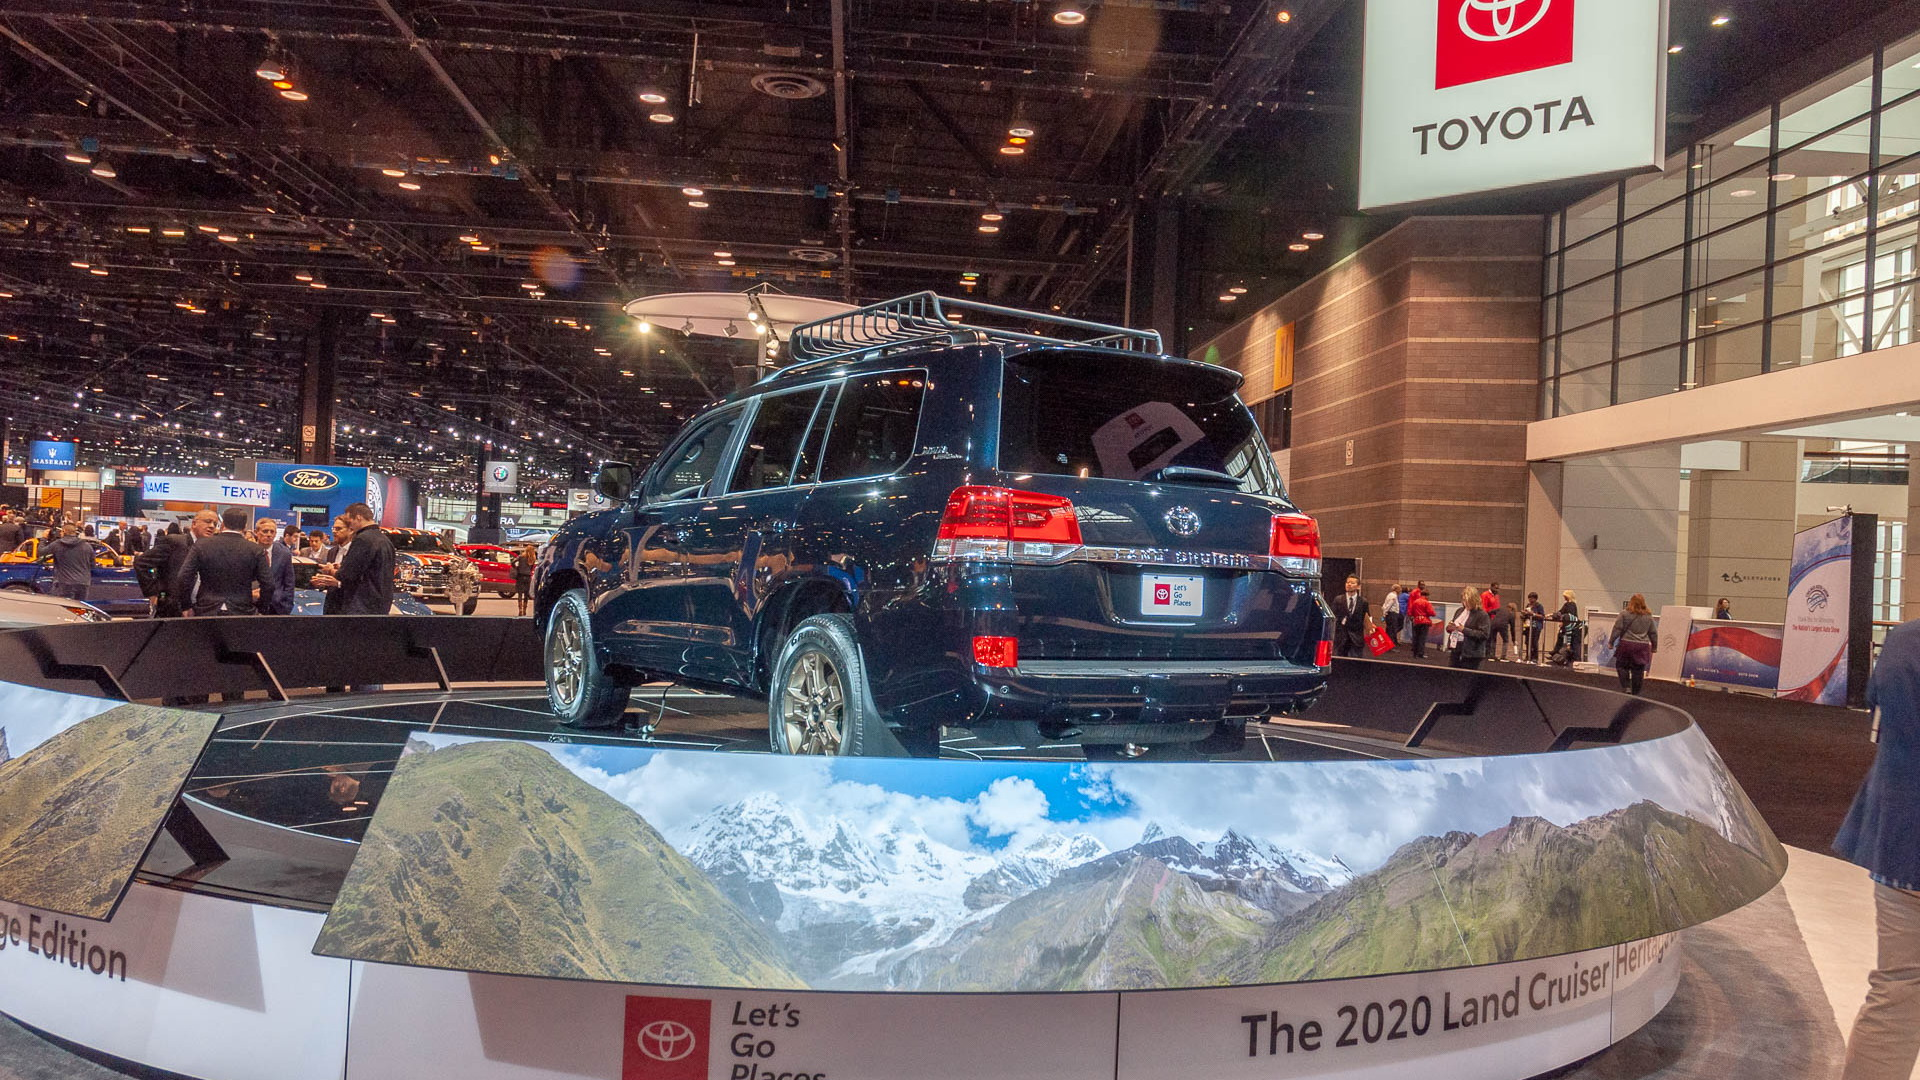 2020 Toyota Land Cruiser Heritage Edition, 2019 Chicago Auto Show